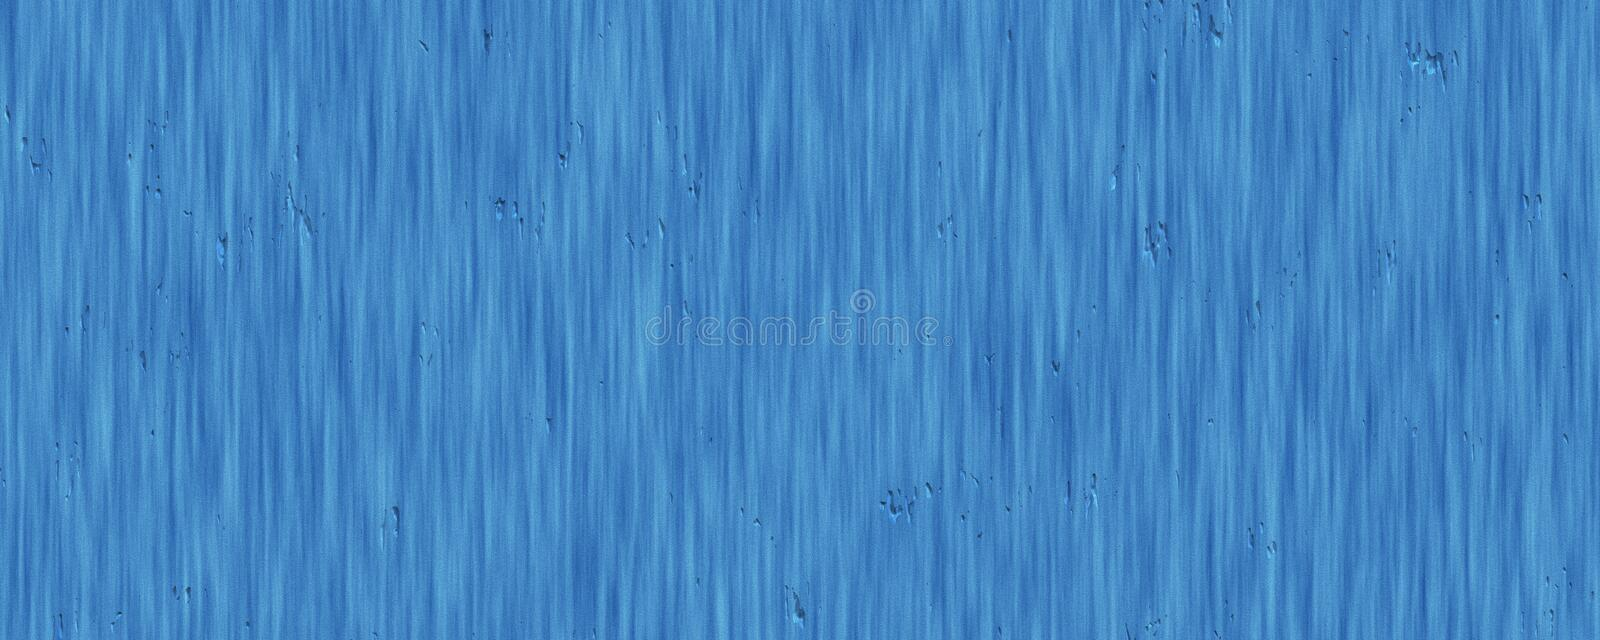 Fundo de superfície de madeira azul sujo da textura do grunge do close up fotografia de stock royalty free